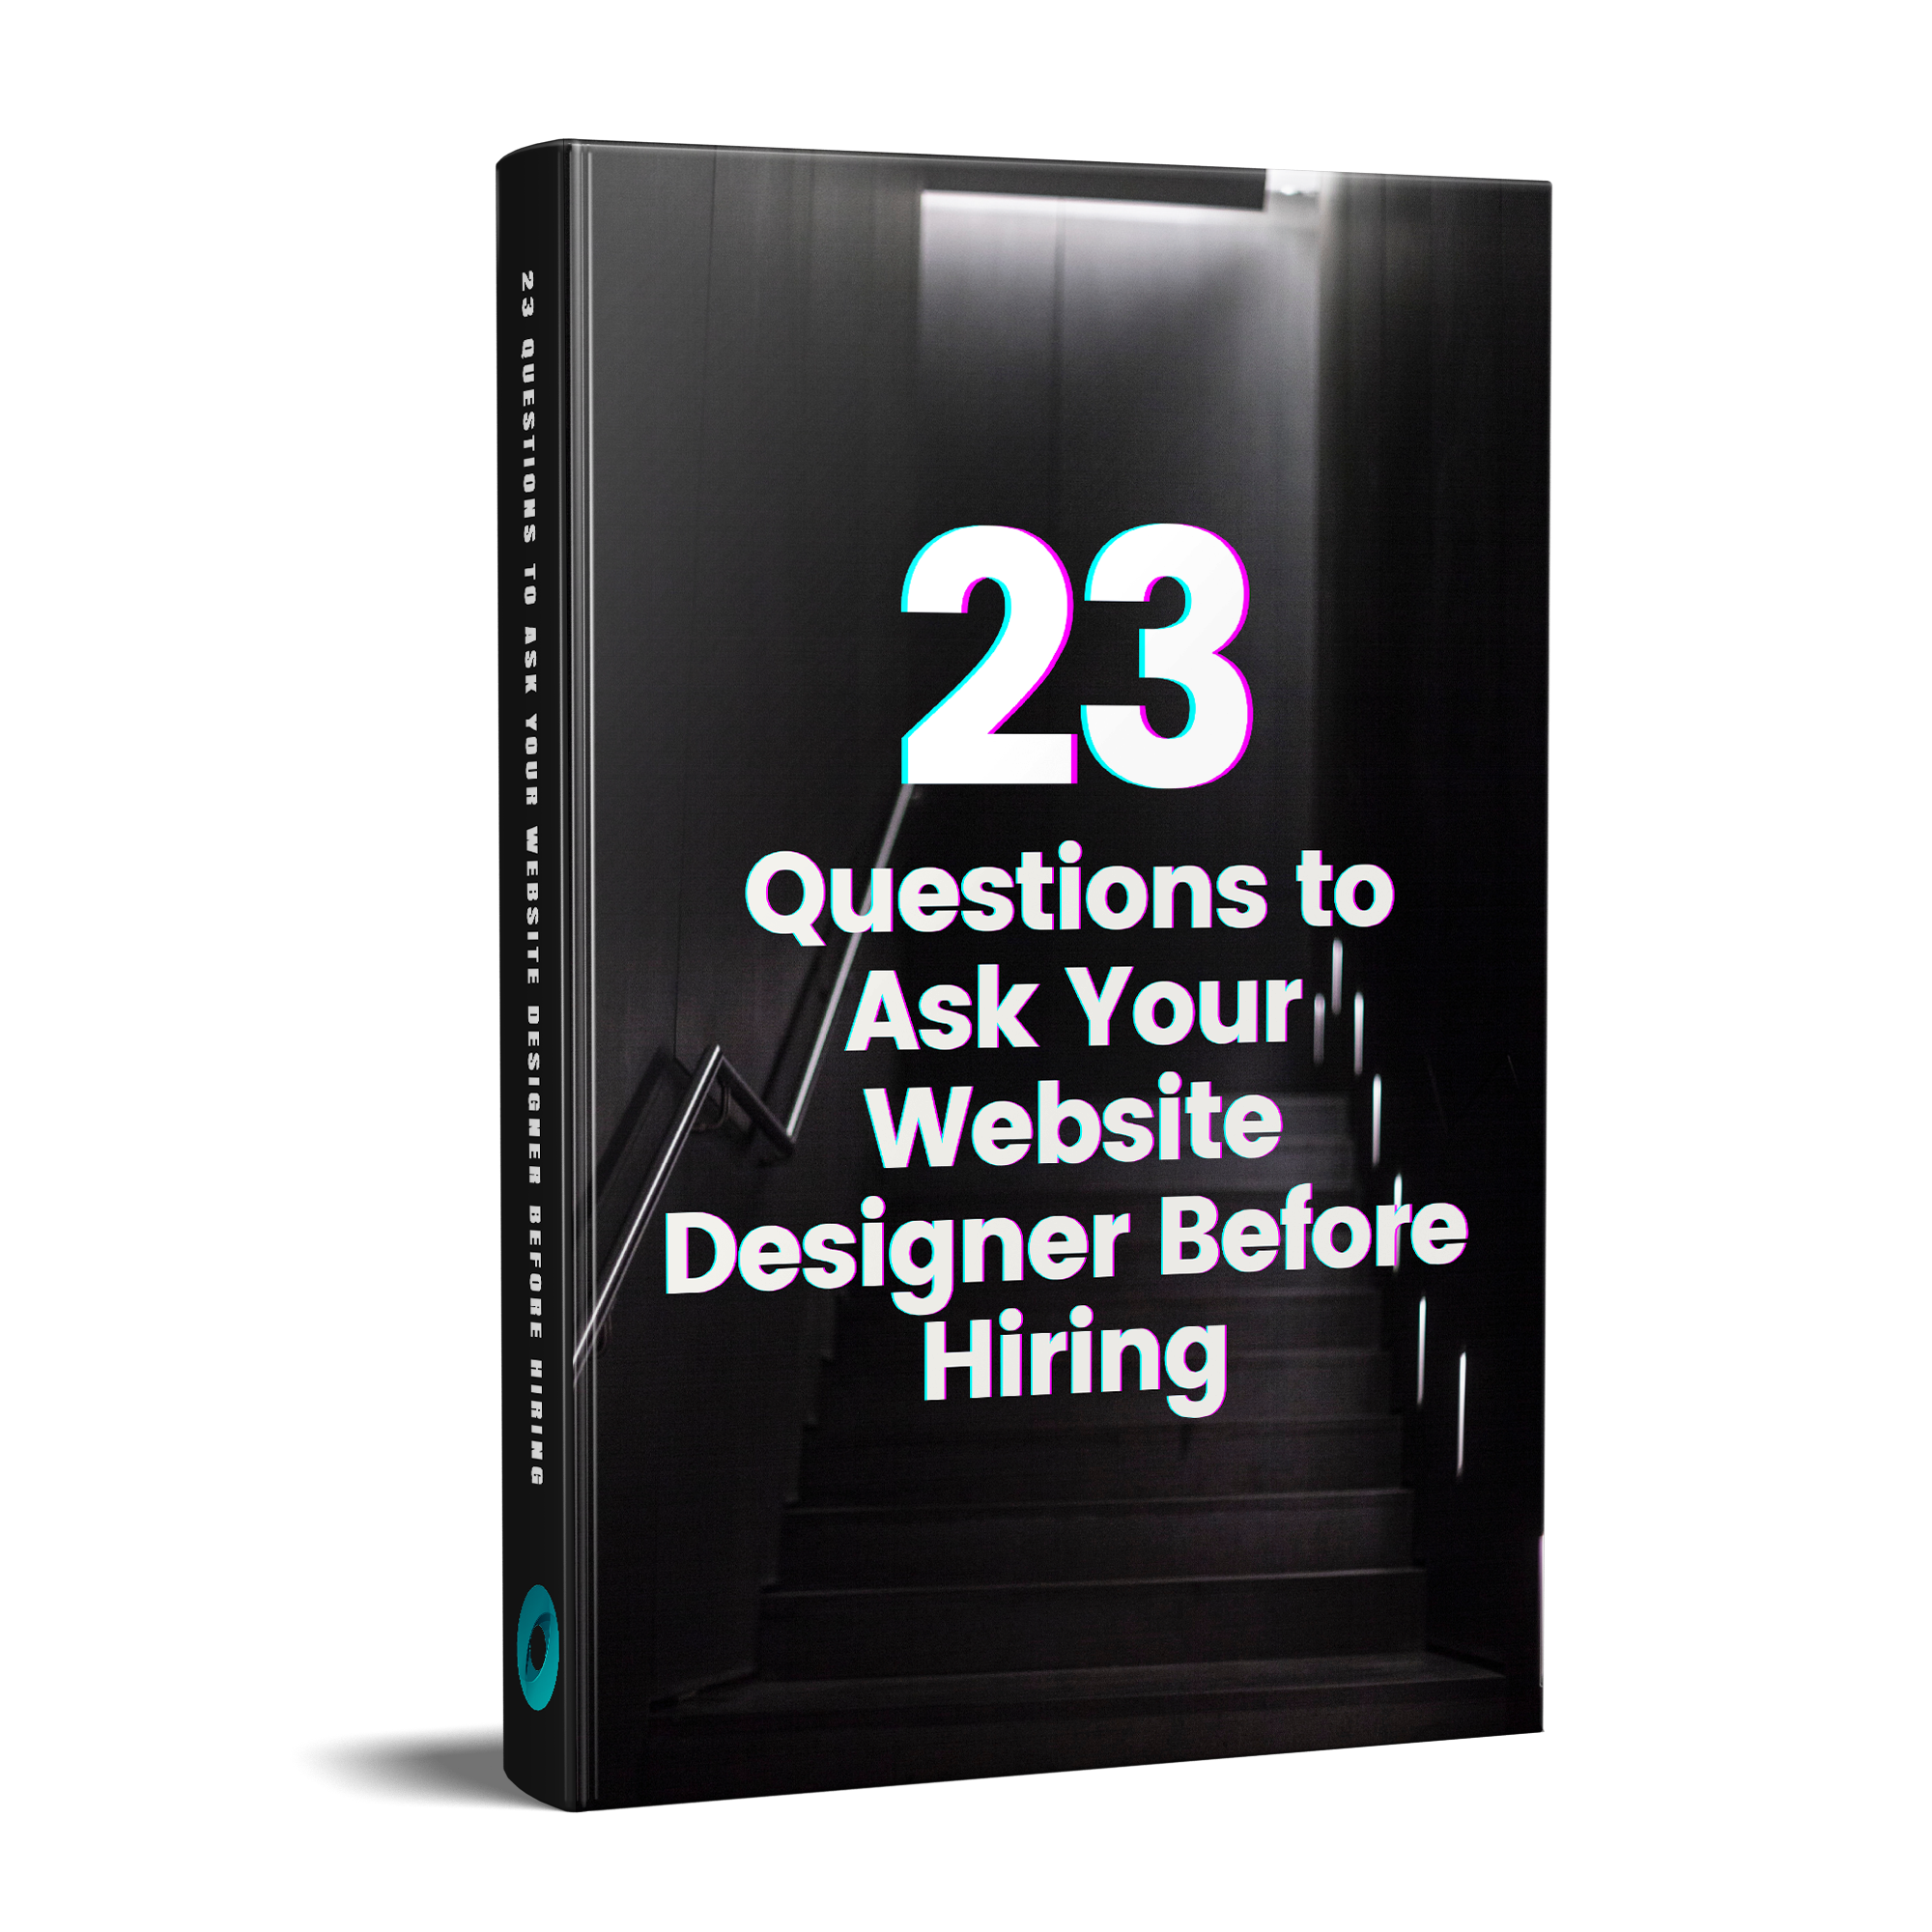 23 Questions to ask your website designer before hiring harvcover